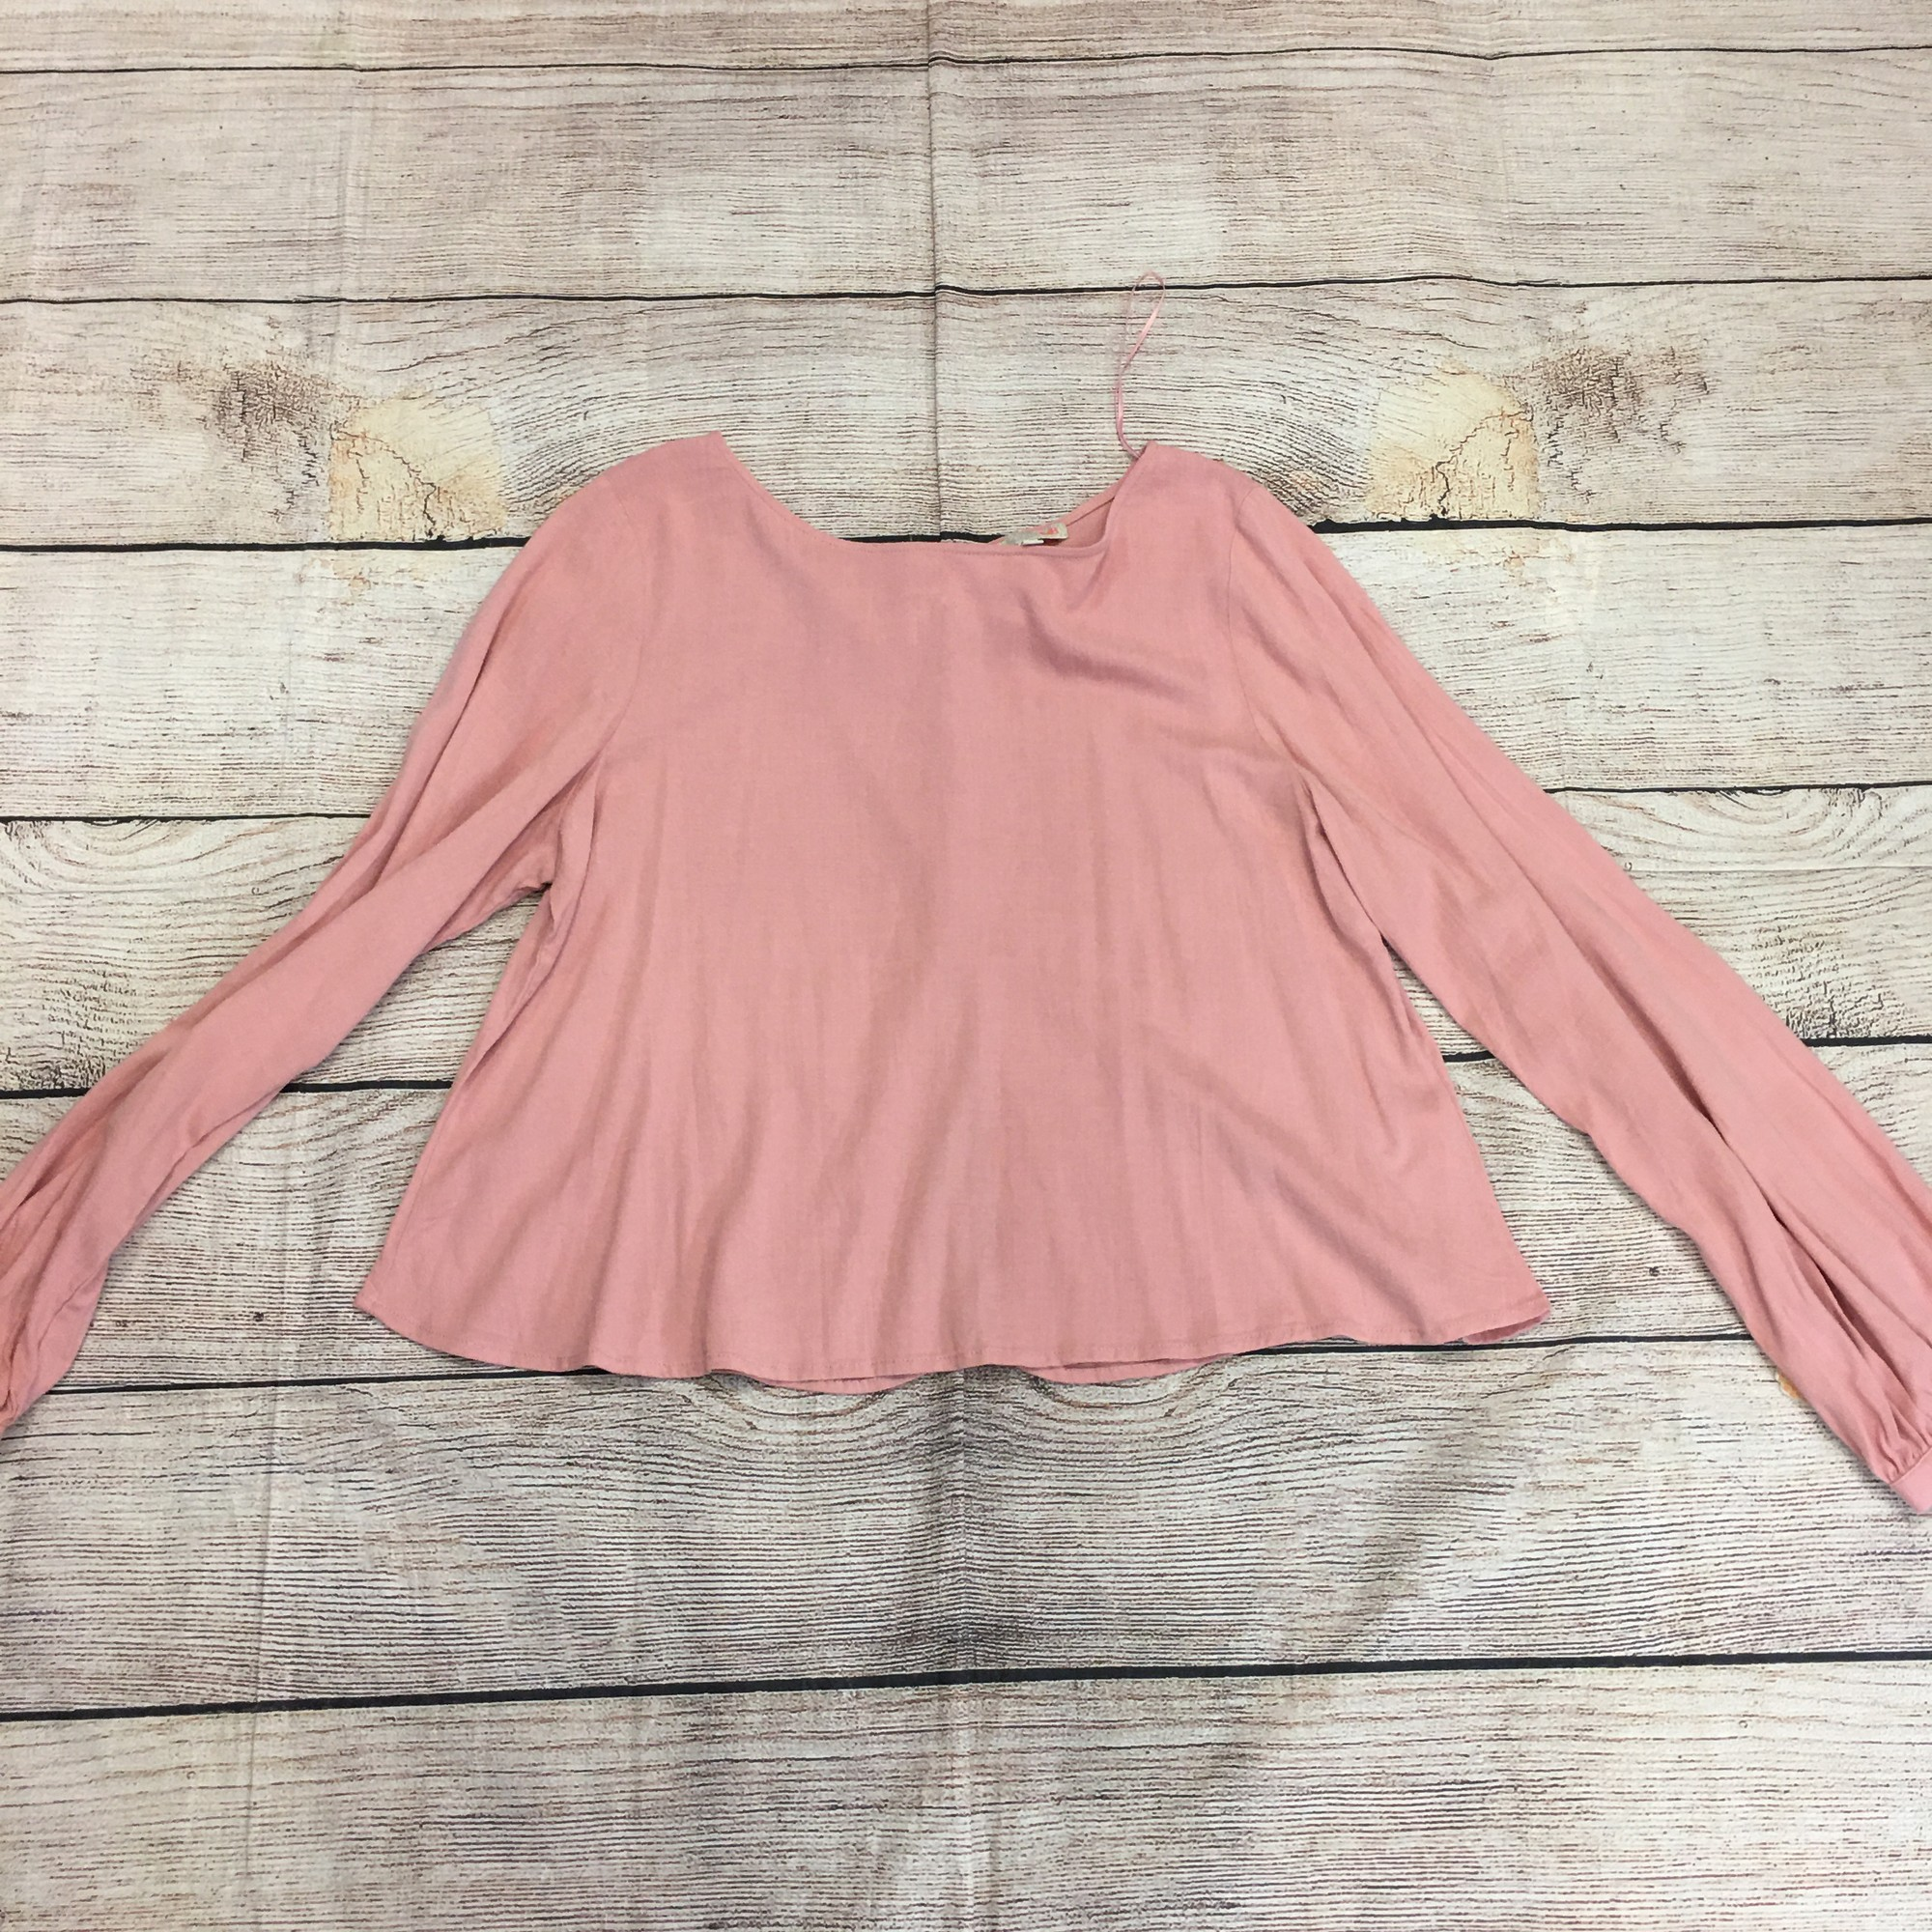 New pink GB top, size XL.  In great condition!